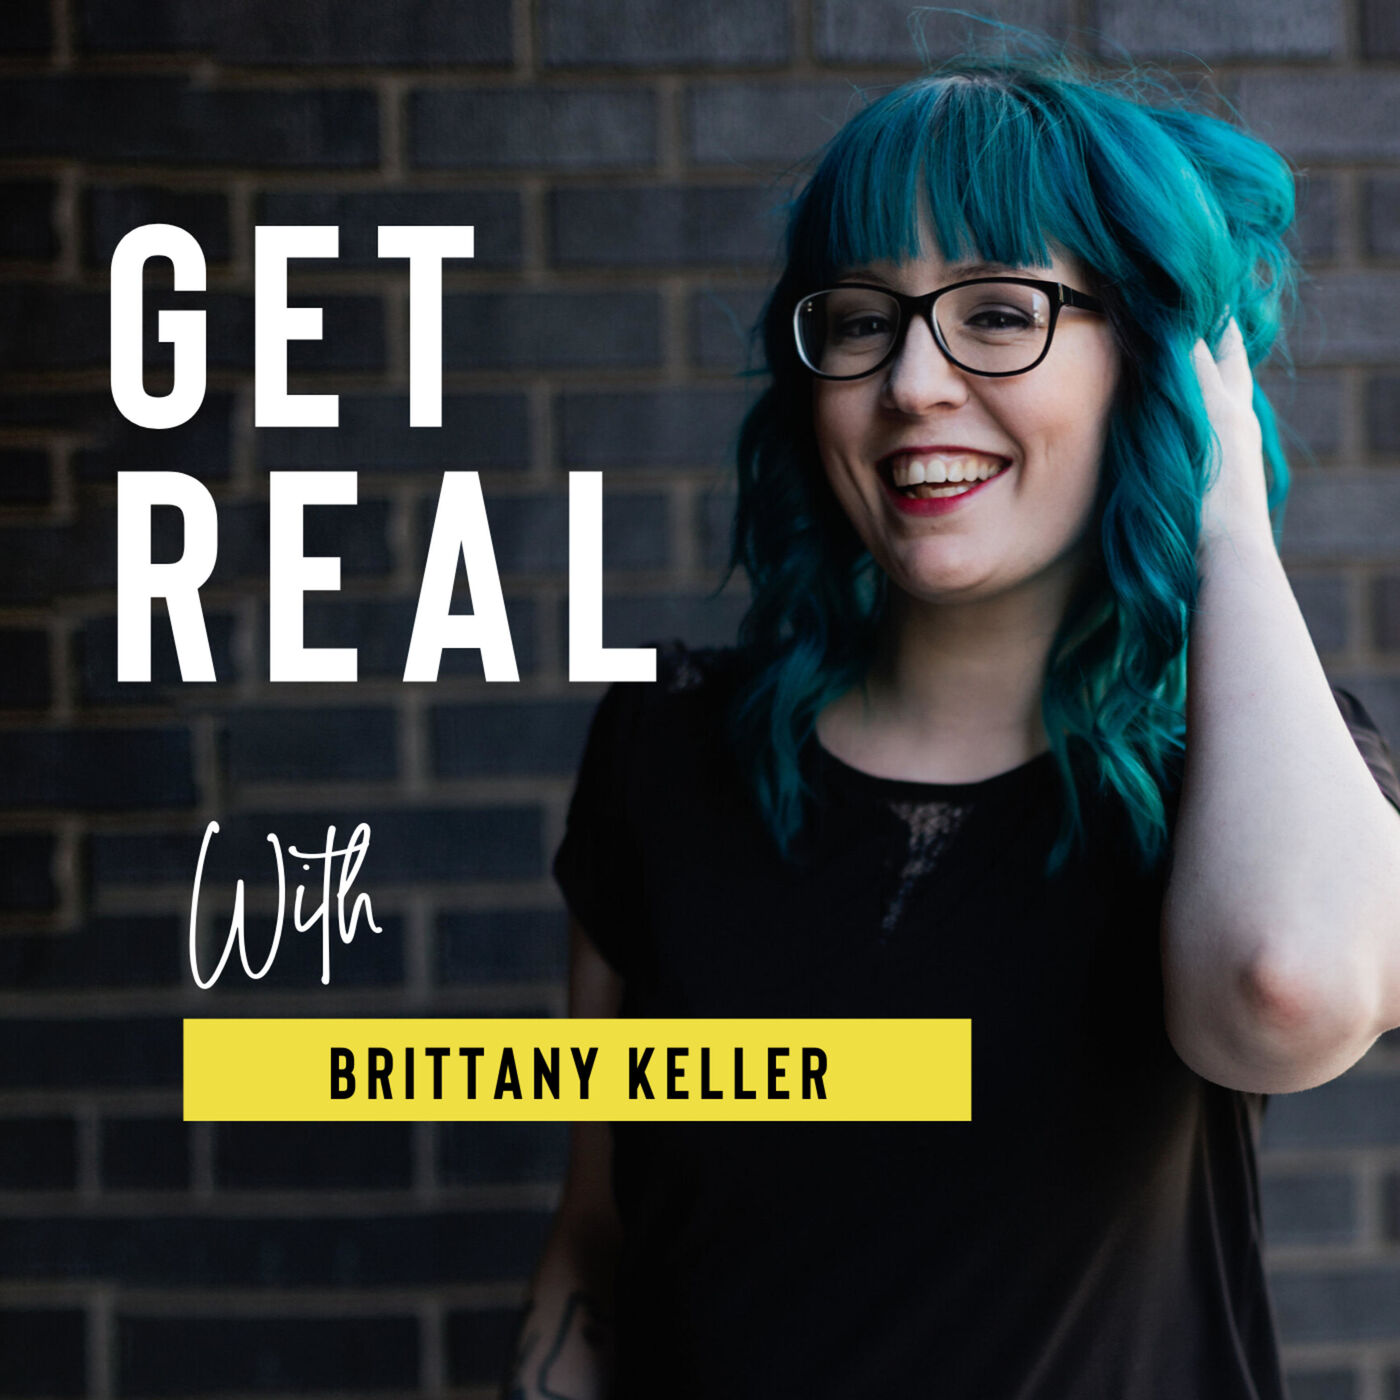 Get REAL With Brittany Keller (Trailer)